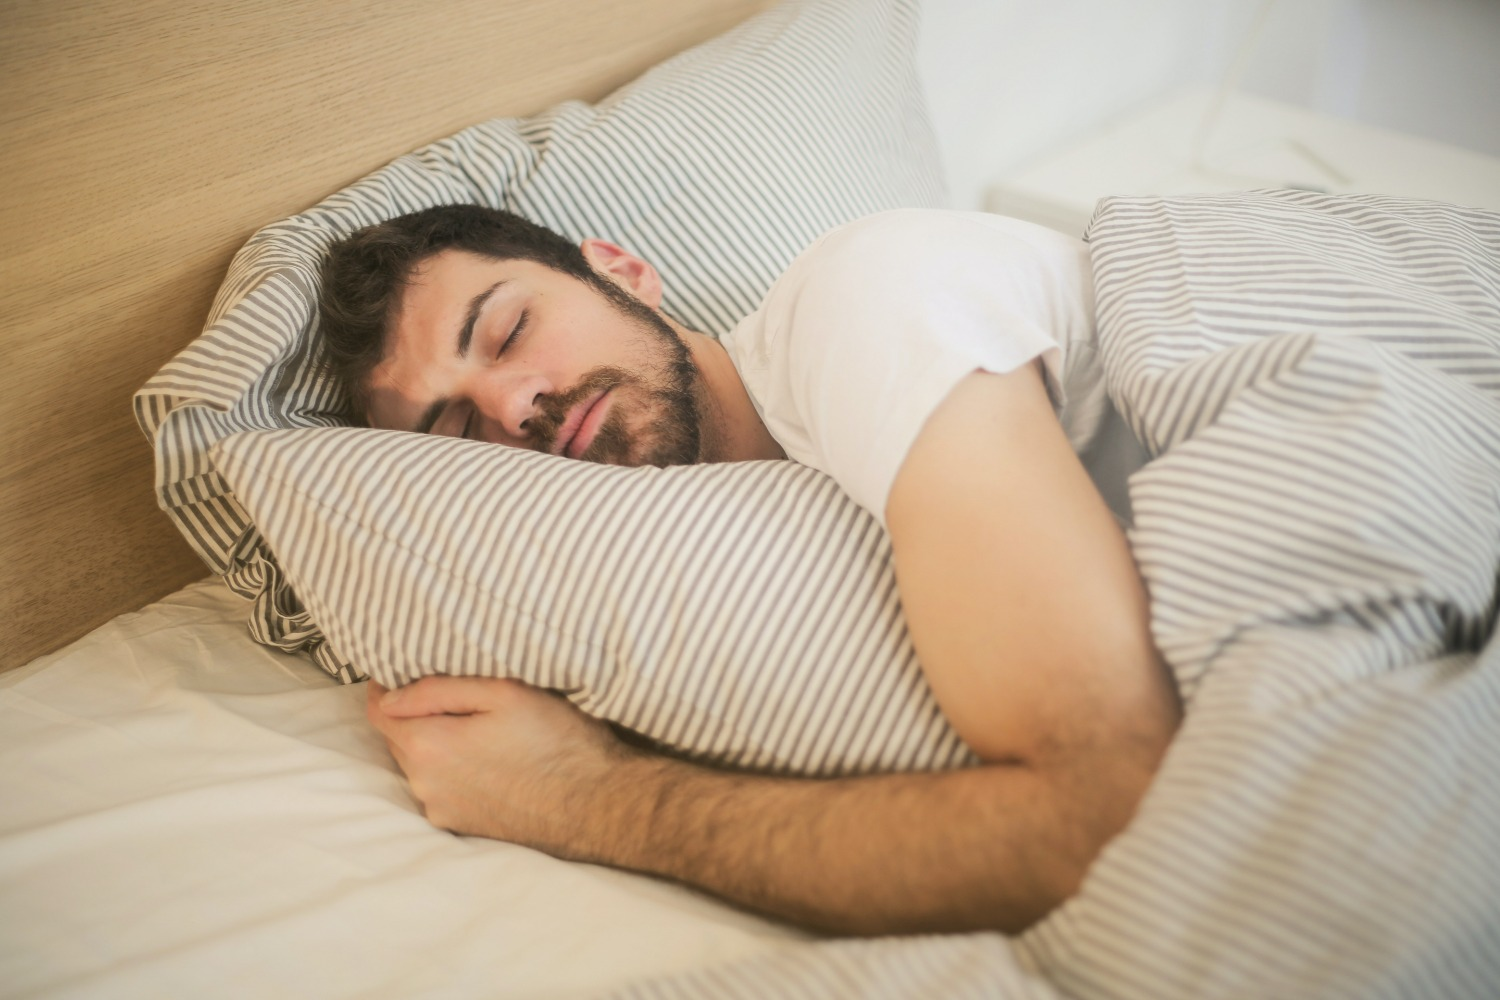 Lack of sleep can increase your hunger   Shutterstock